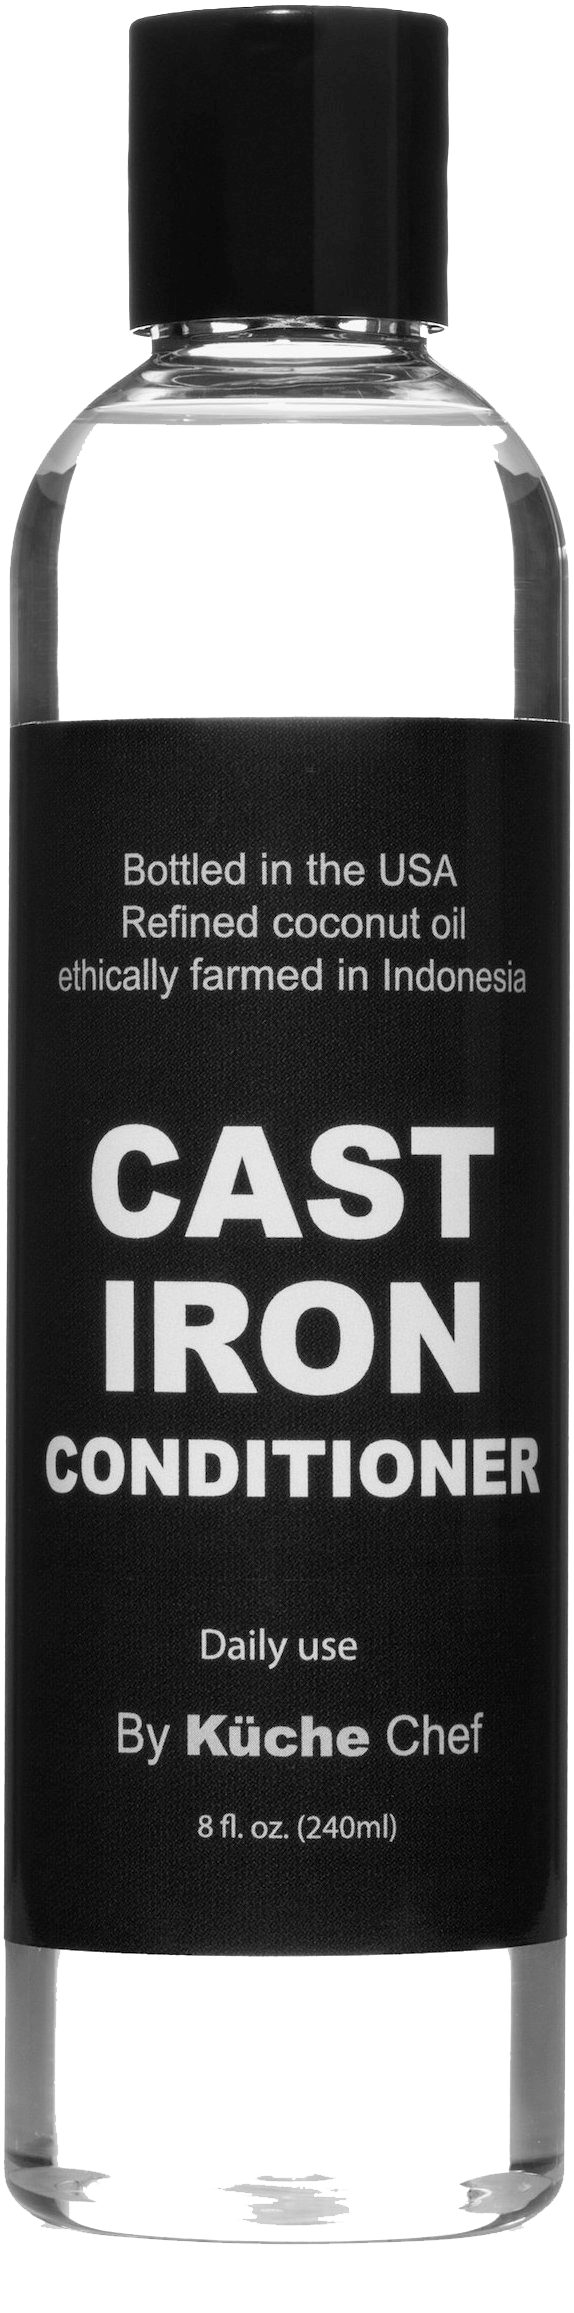 cast-iron-conditioner